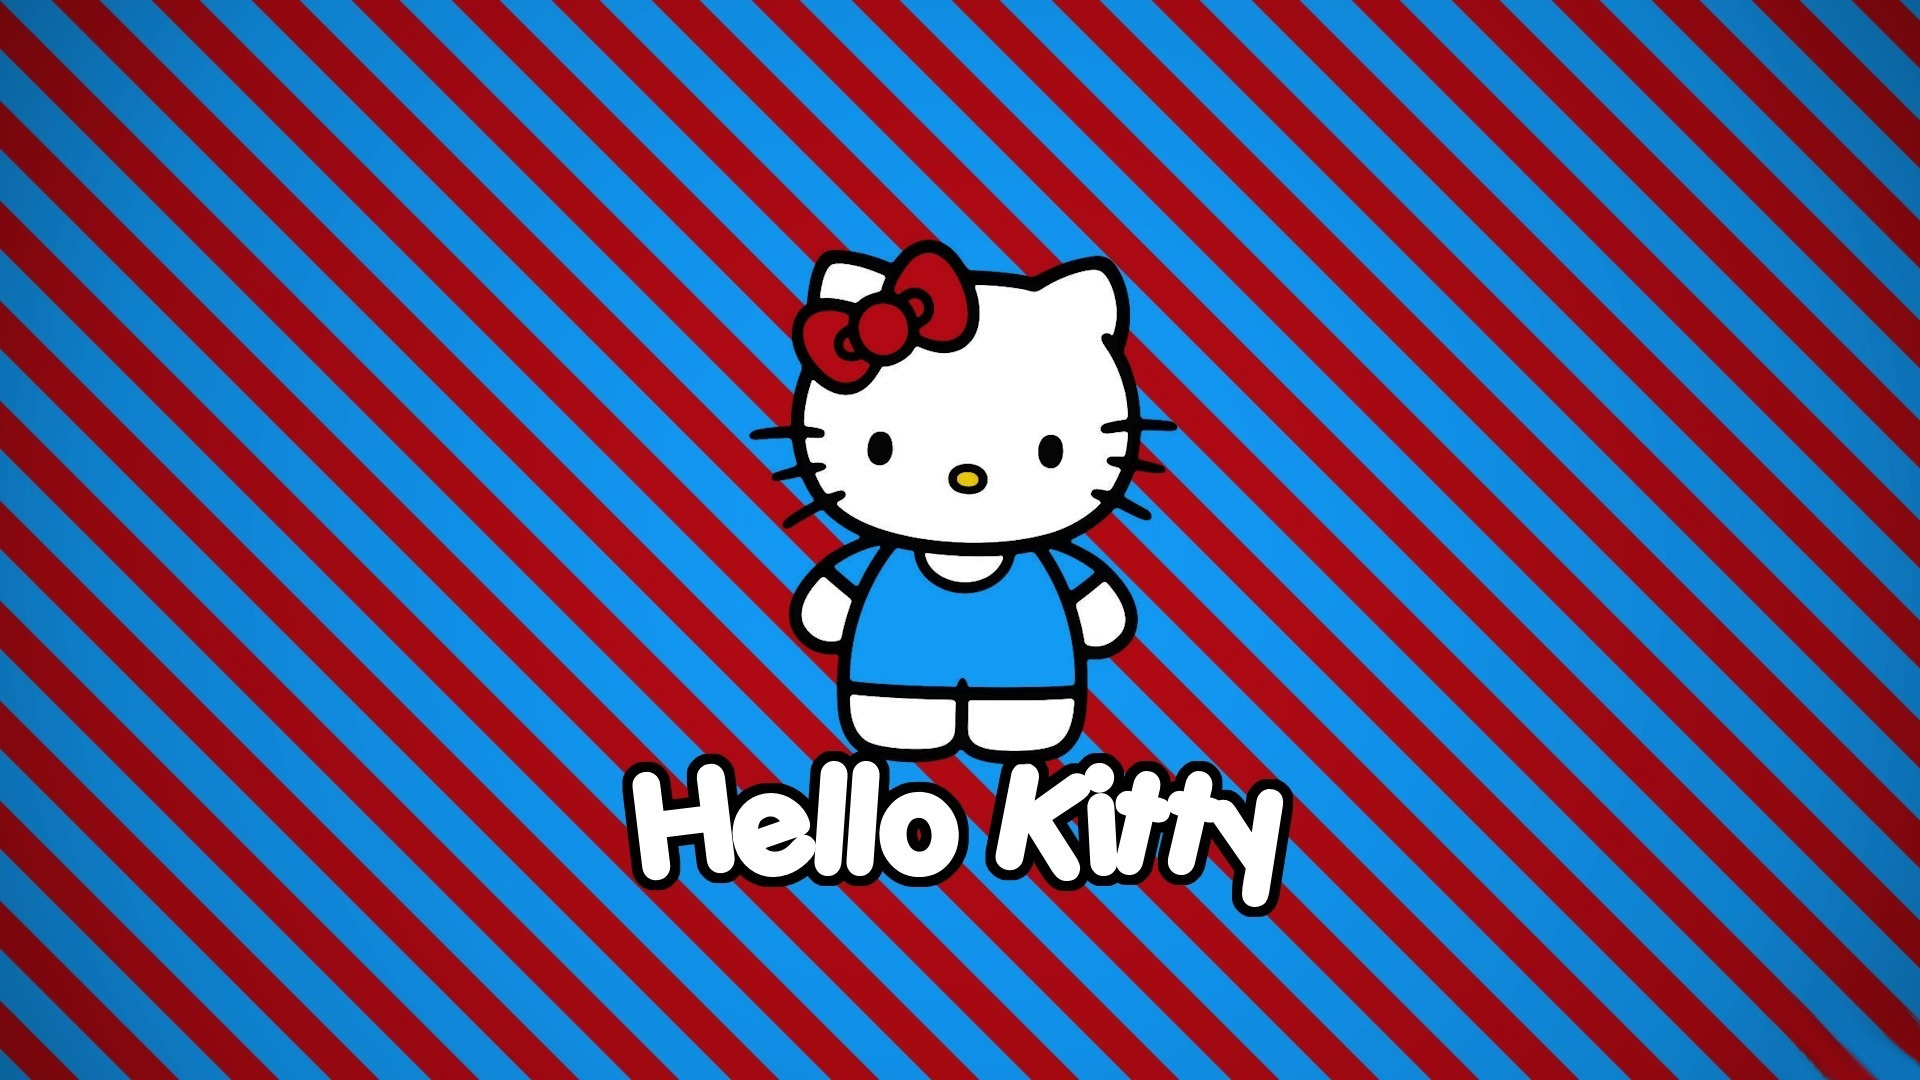 Hello Kitty HD Wallpapers   Hd Wallpapers